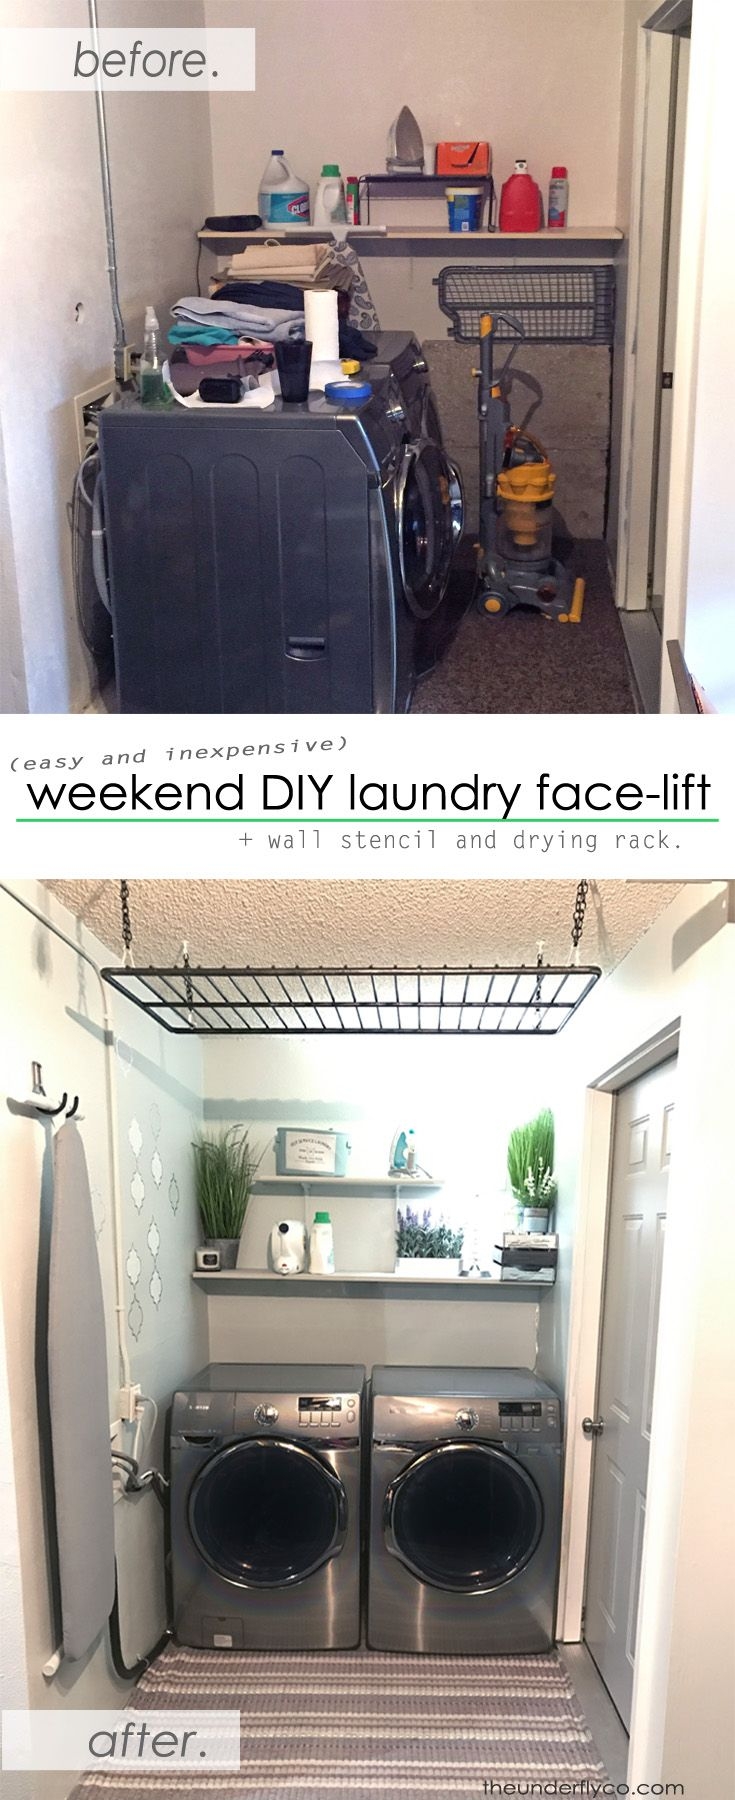 14 best images about remodel before after on pinterest vinyl sprucing up a gloomy dark garage laundry space using very little time or money